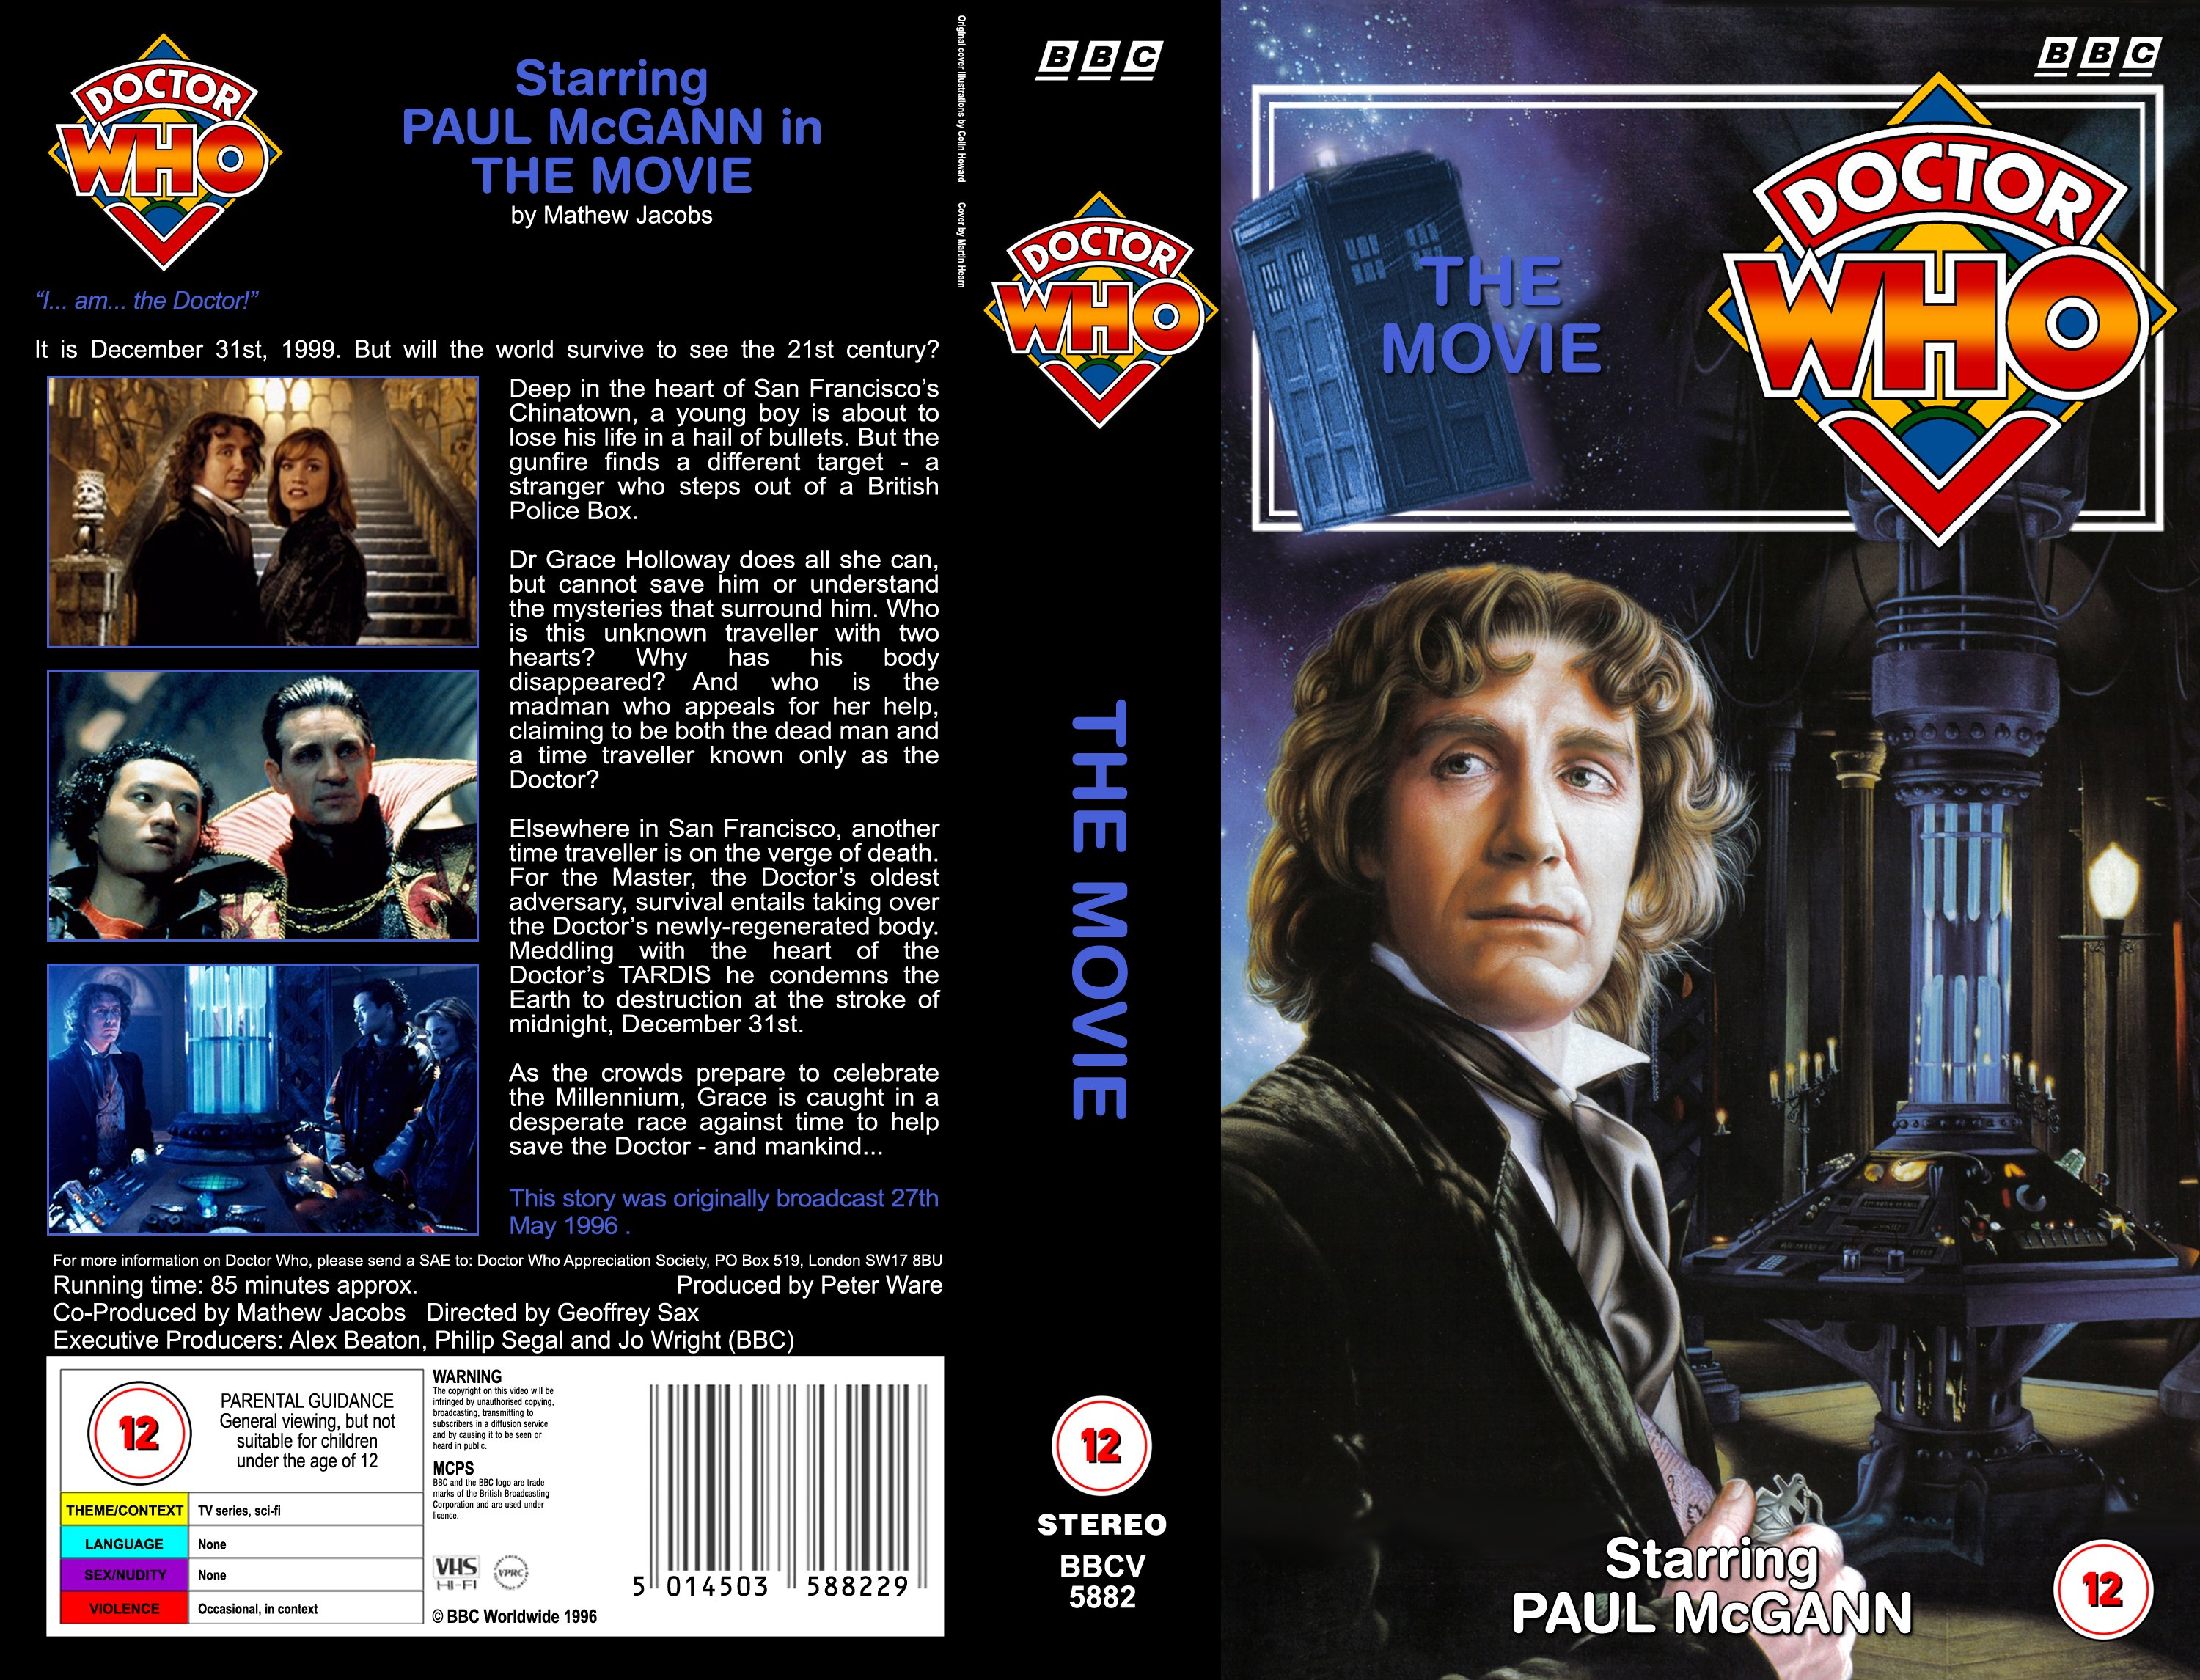 dvd flick menu templates - the 1996 tv movie covers